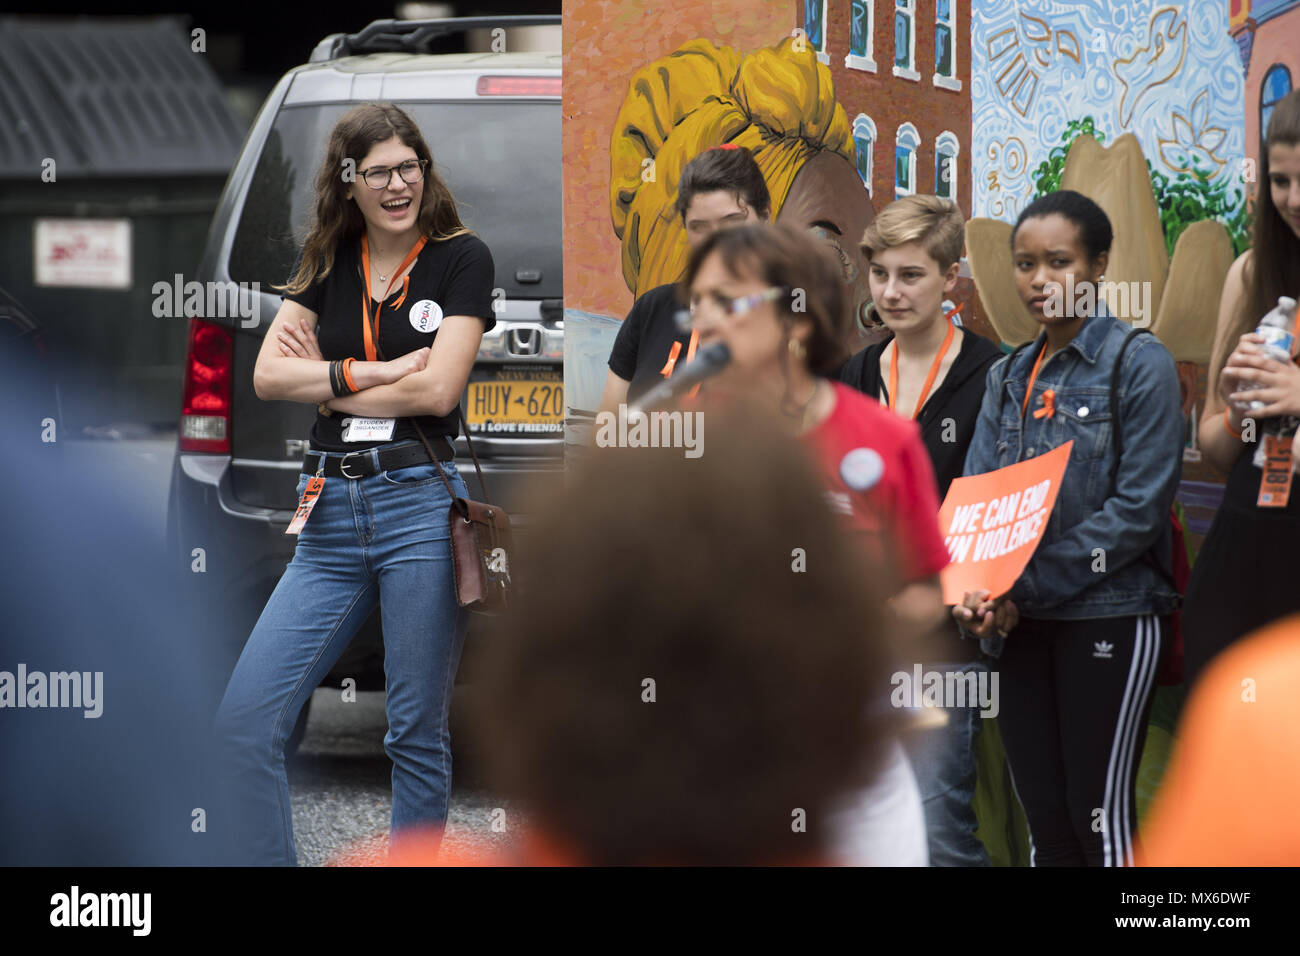 Poughkeepsie New York Usa 3rd June 2018 Emme Magliato Left Moffat Wiring Diagram Looks On During A Protest For Gun Law Reform And School Safety Sunday 3